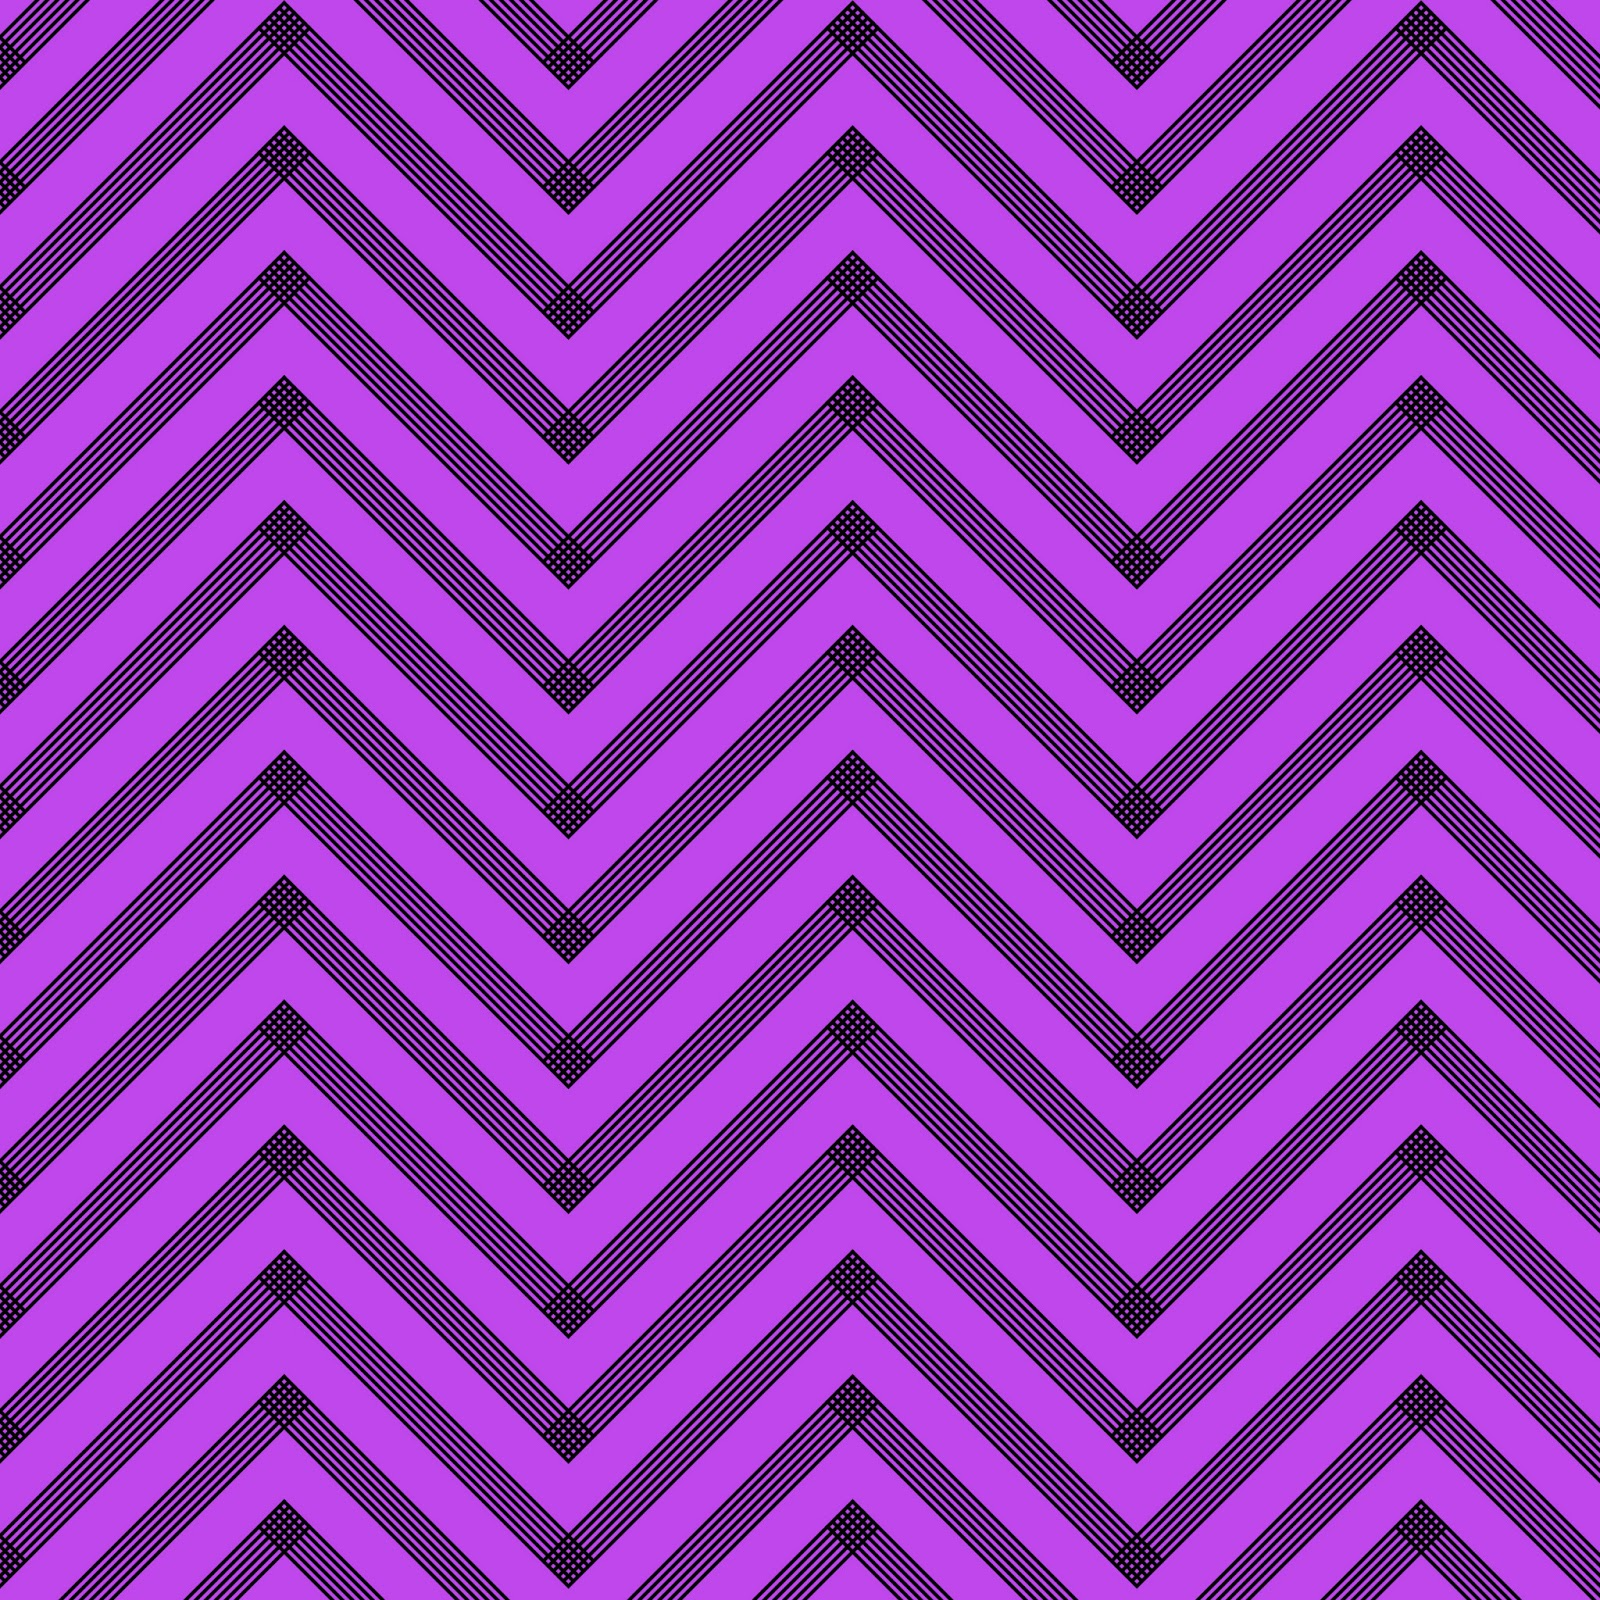 Gold Zig Zag Wallpaper - WallpaperSafari